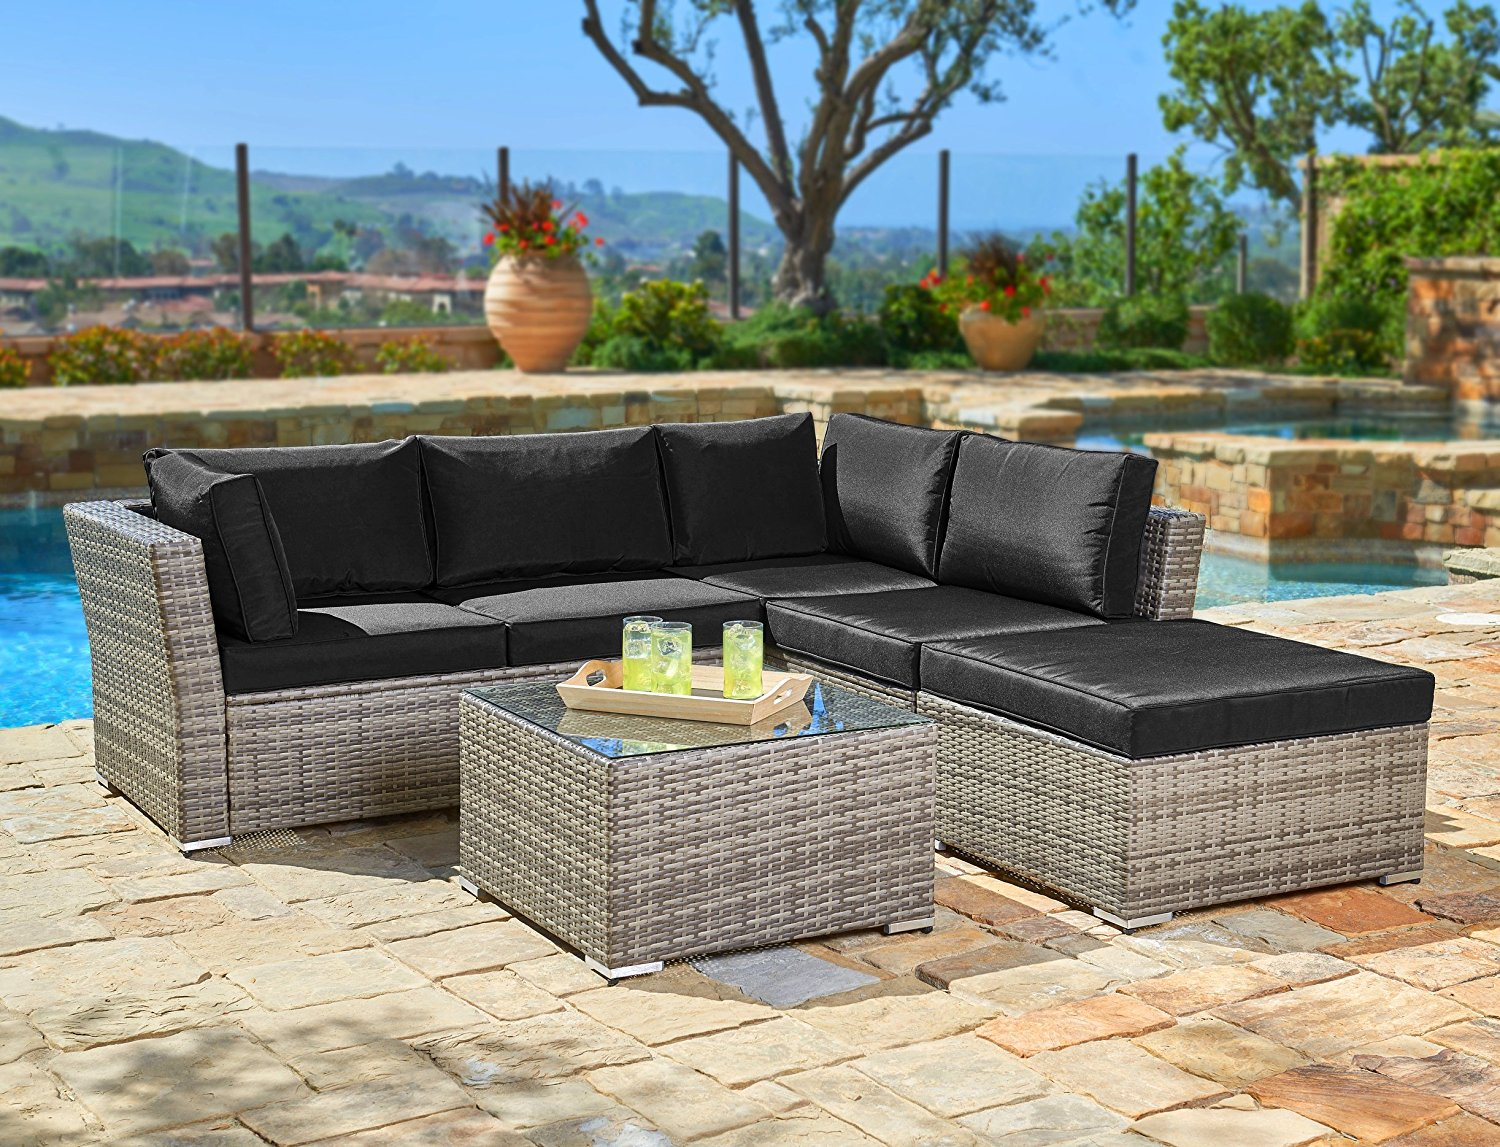 Review of Suncrown Outdoor Furniture Sectional Sofa (4-Piece Set) All-Weather